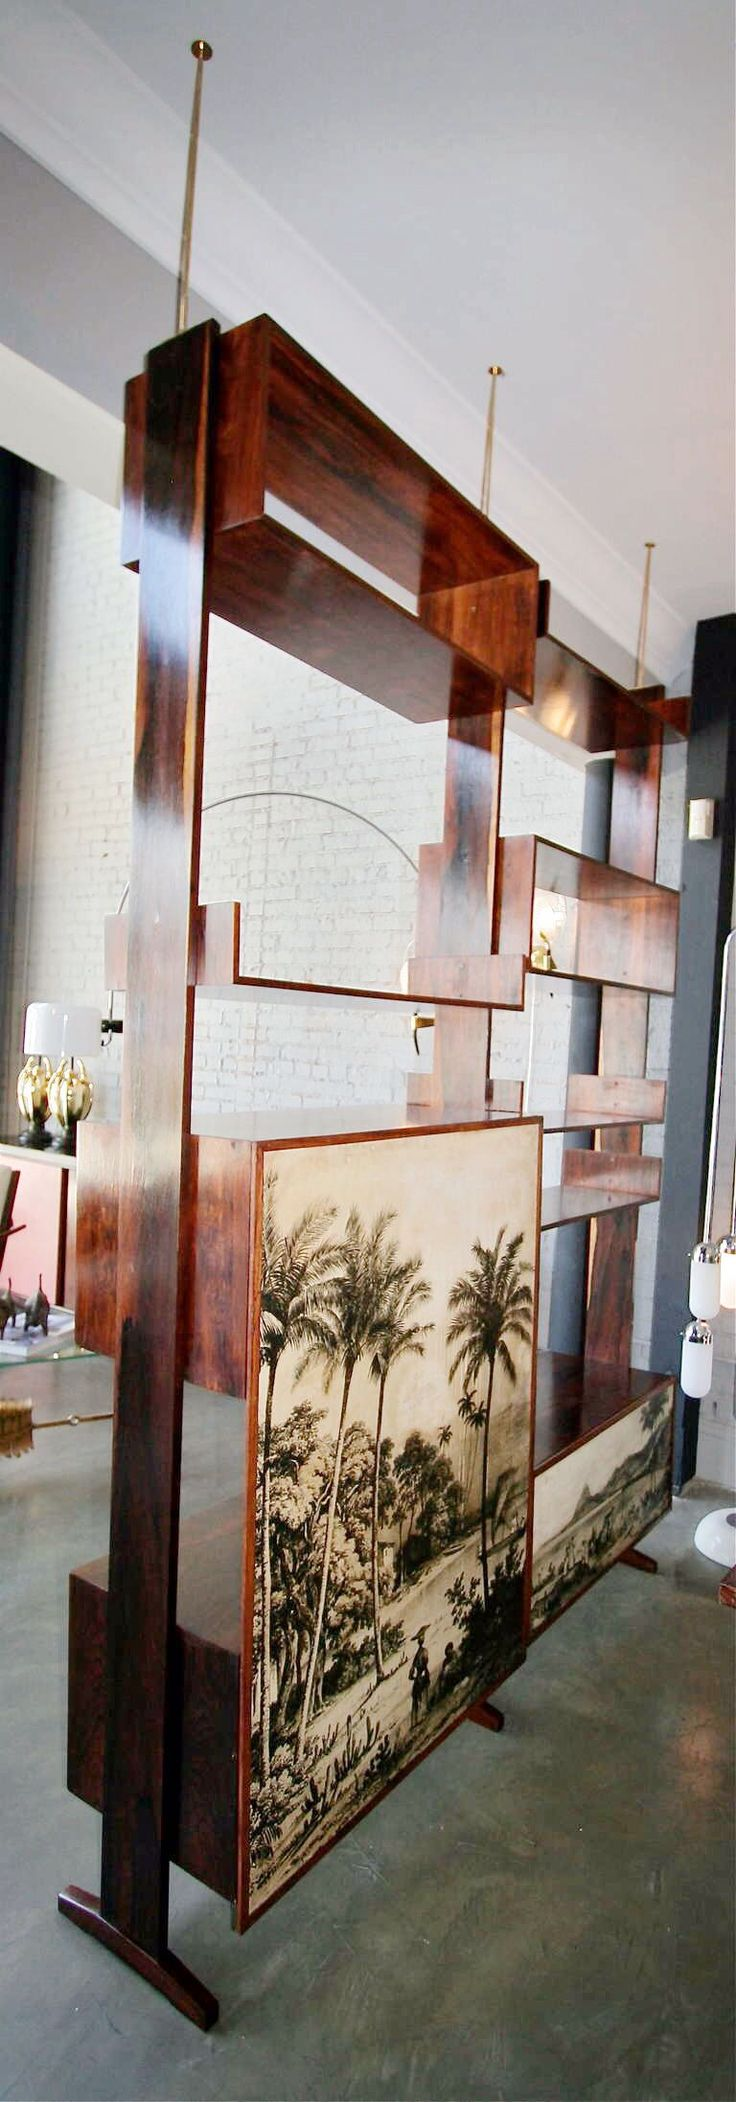 17 best images about room dividers on pinterest | asian design